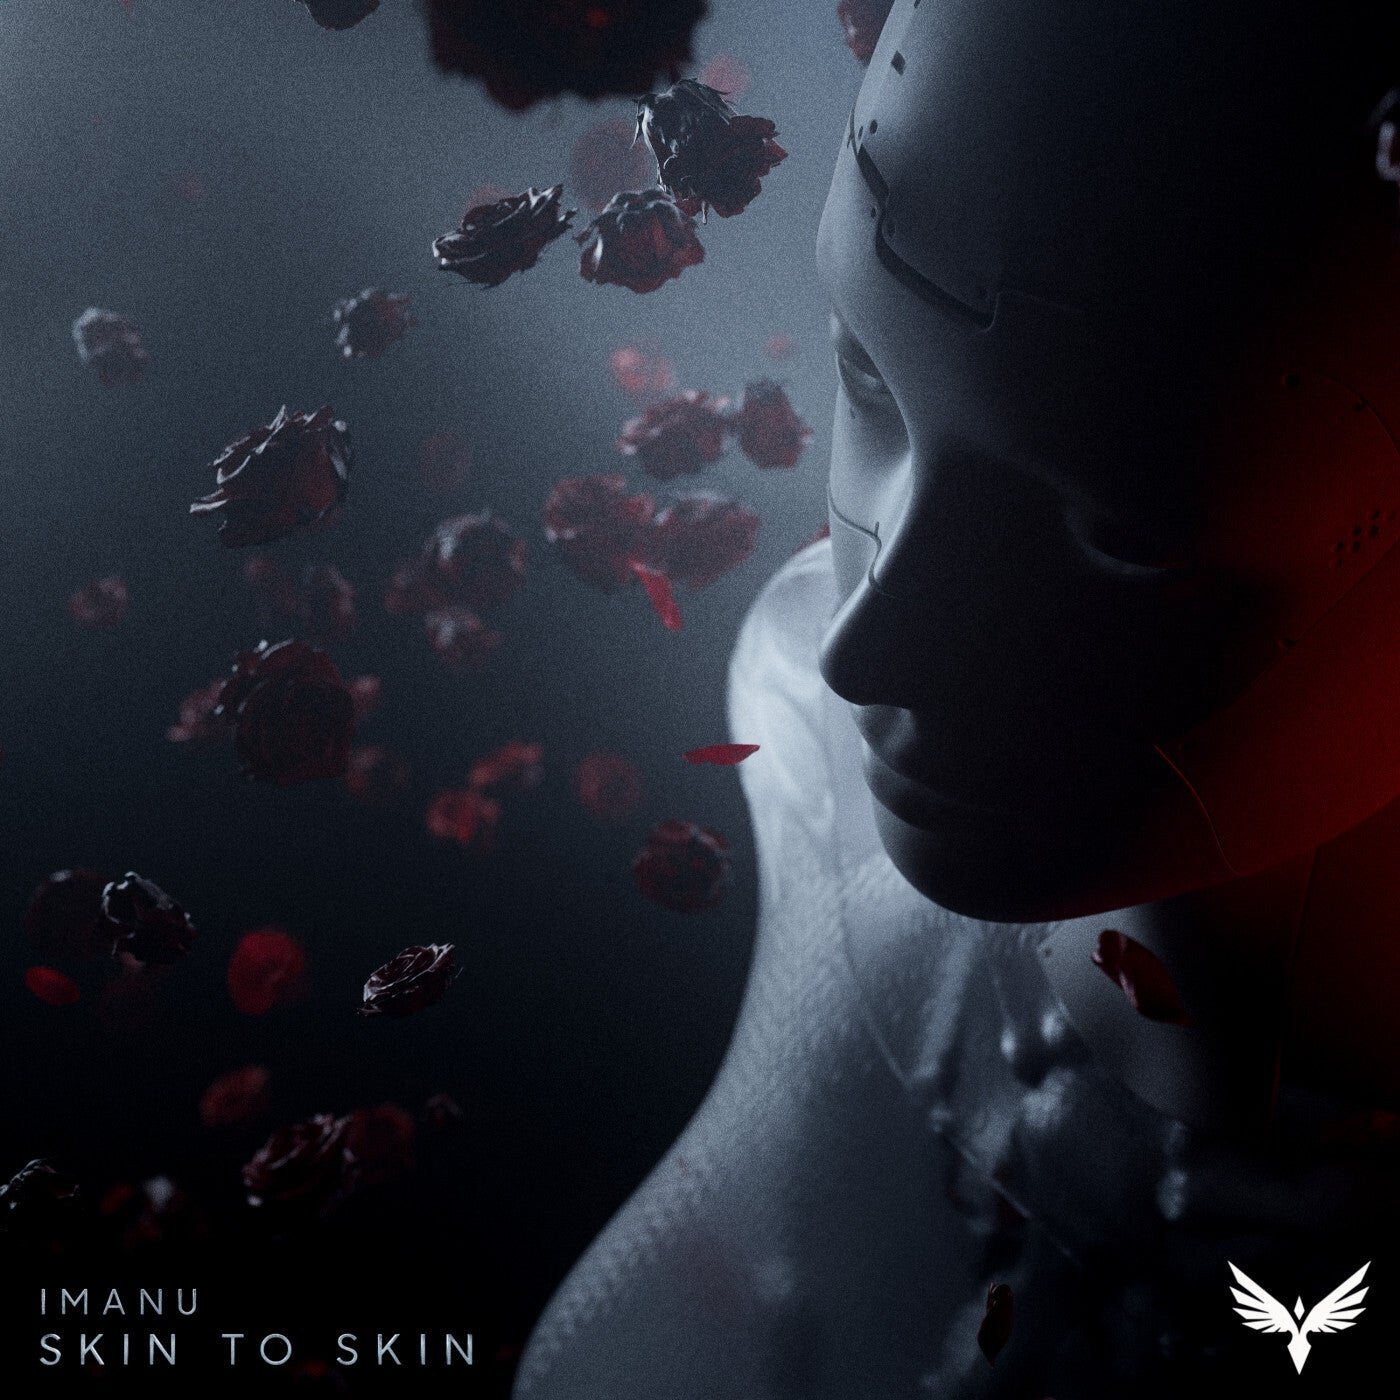 Skin To Skin (Original Mix)